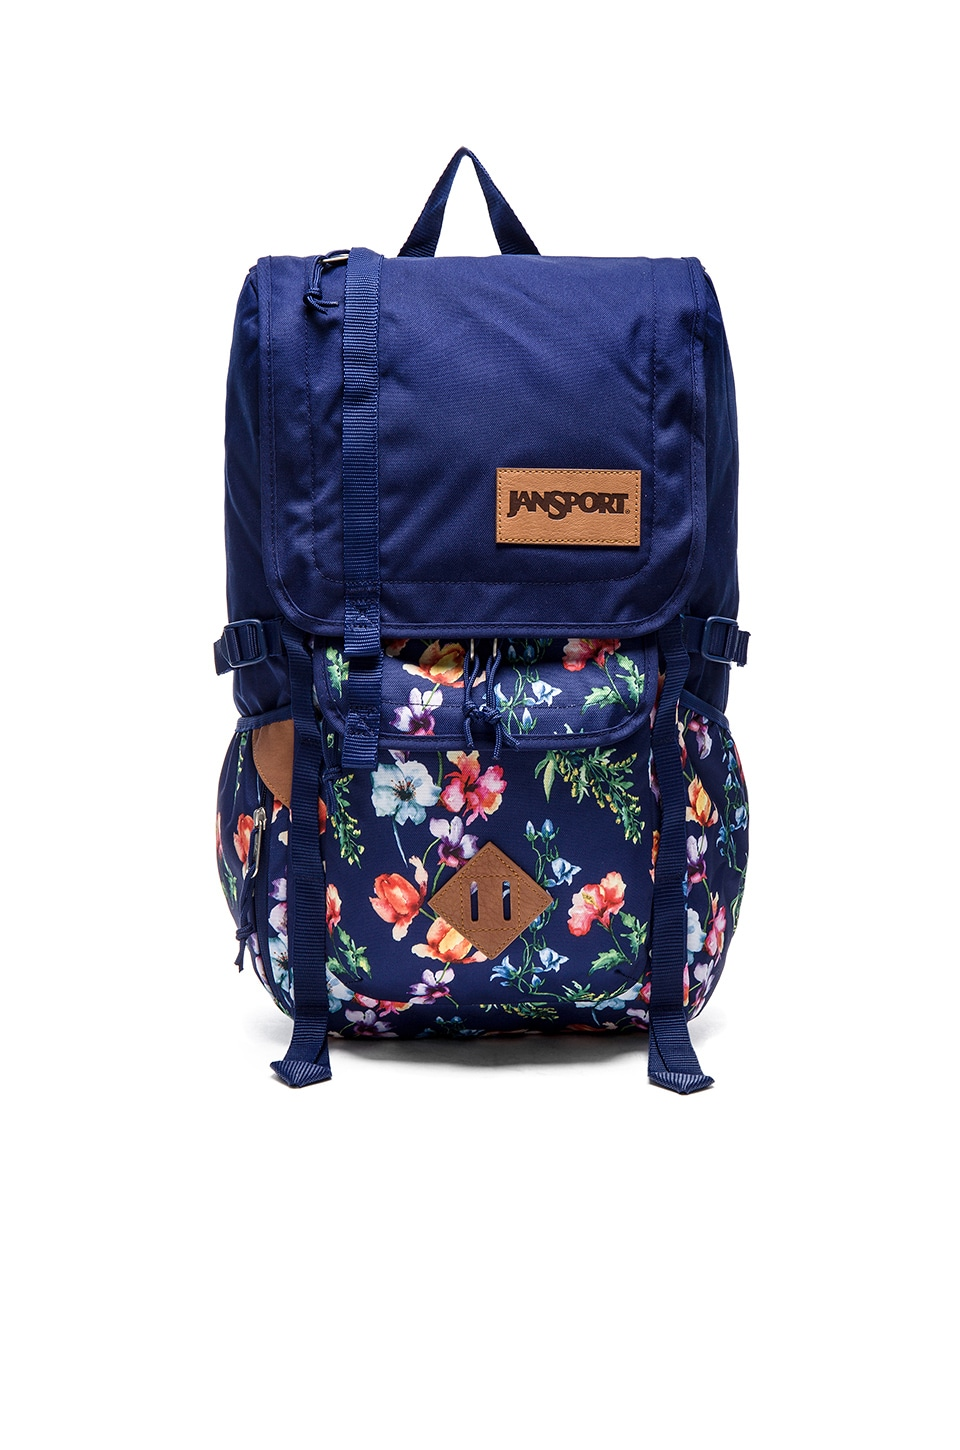 Jansport Hatchet in Multi Navy Mountain Meadow